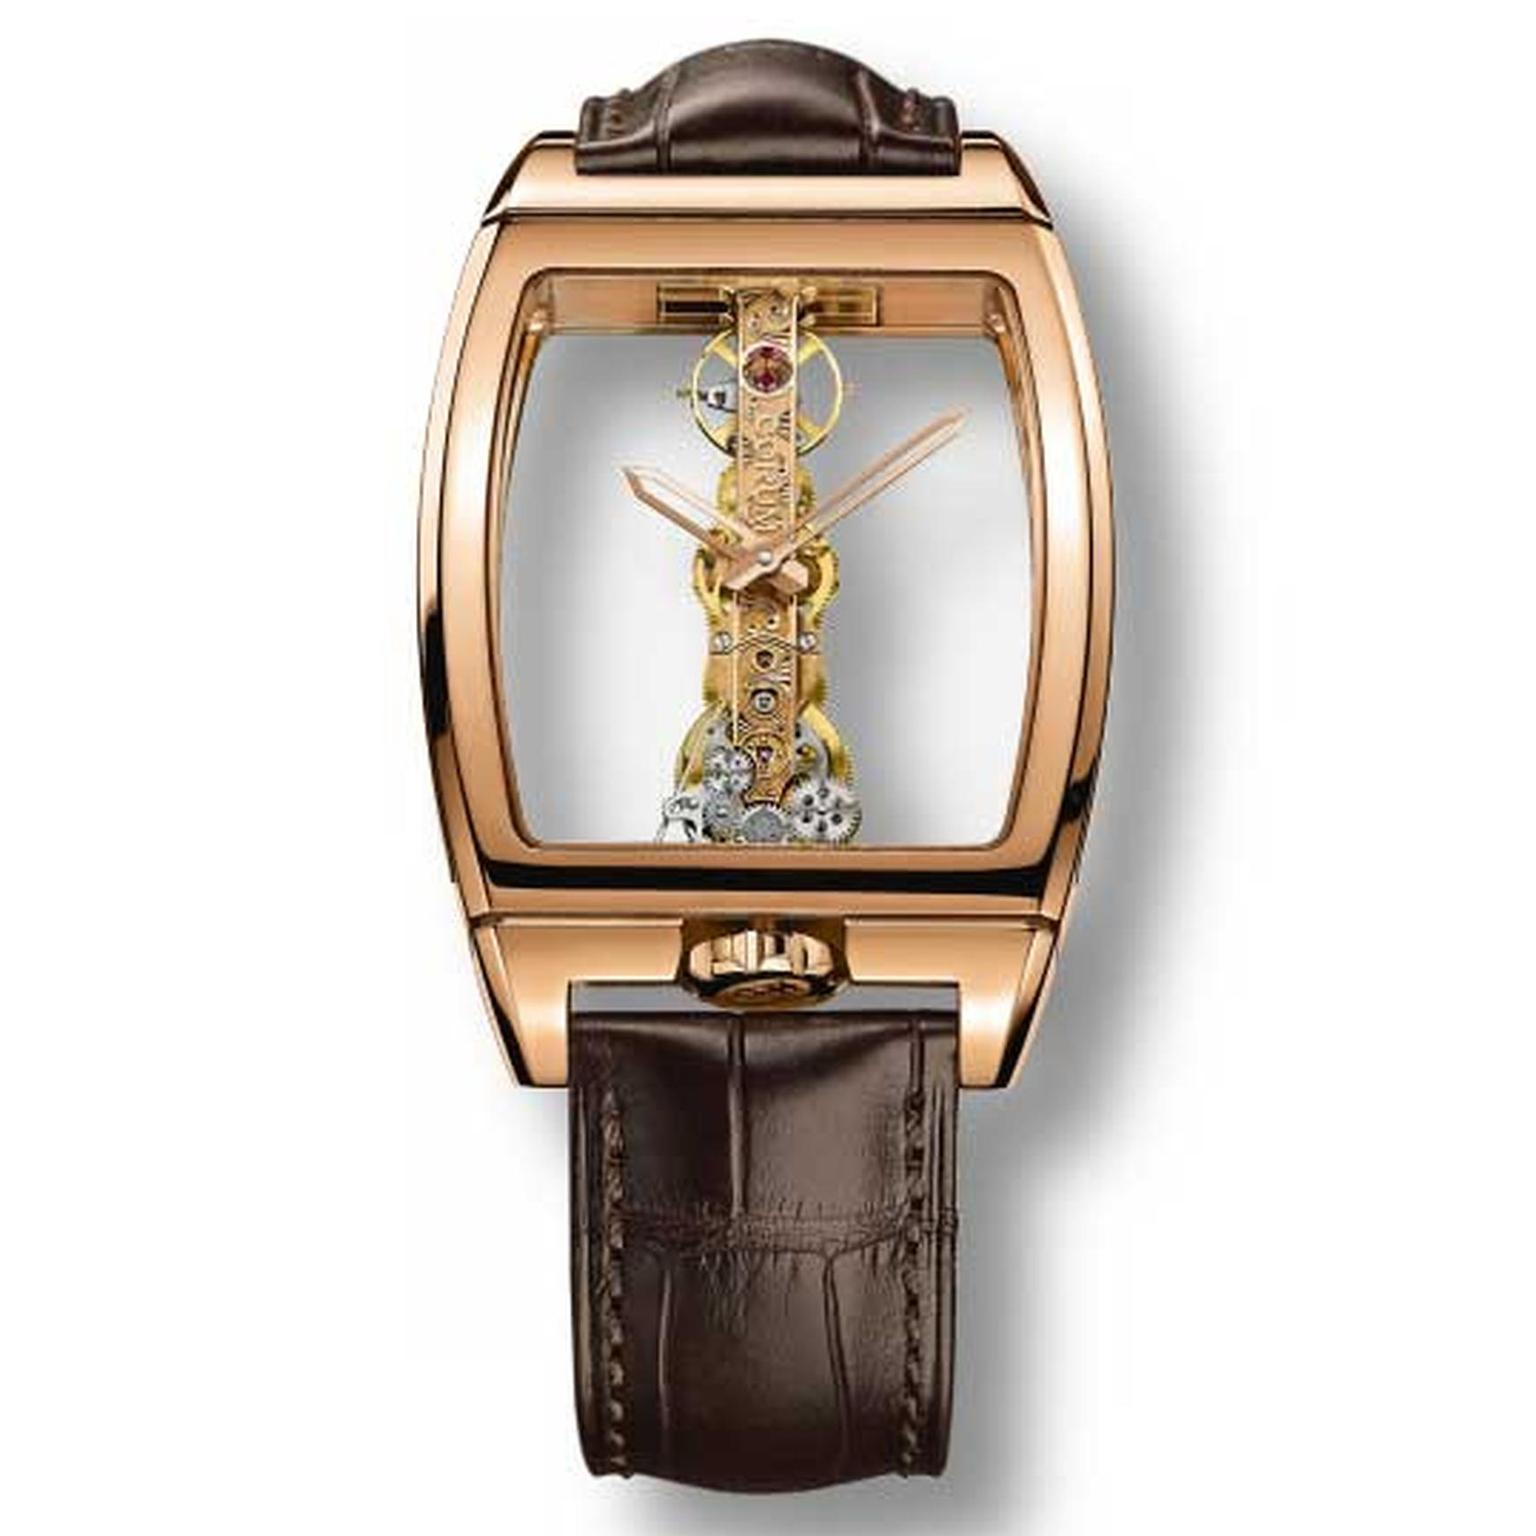 Corum Golden Bridge watch from 1980